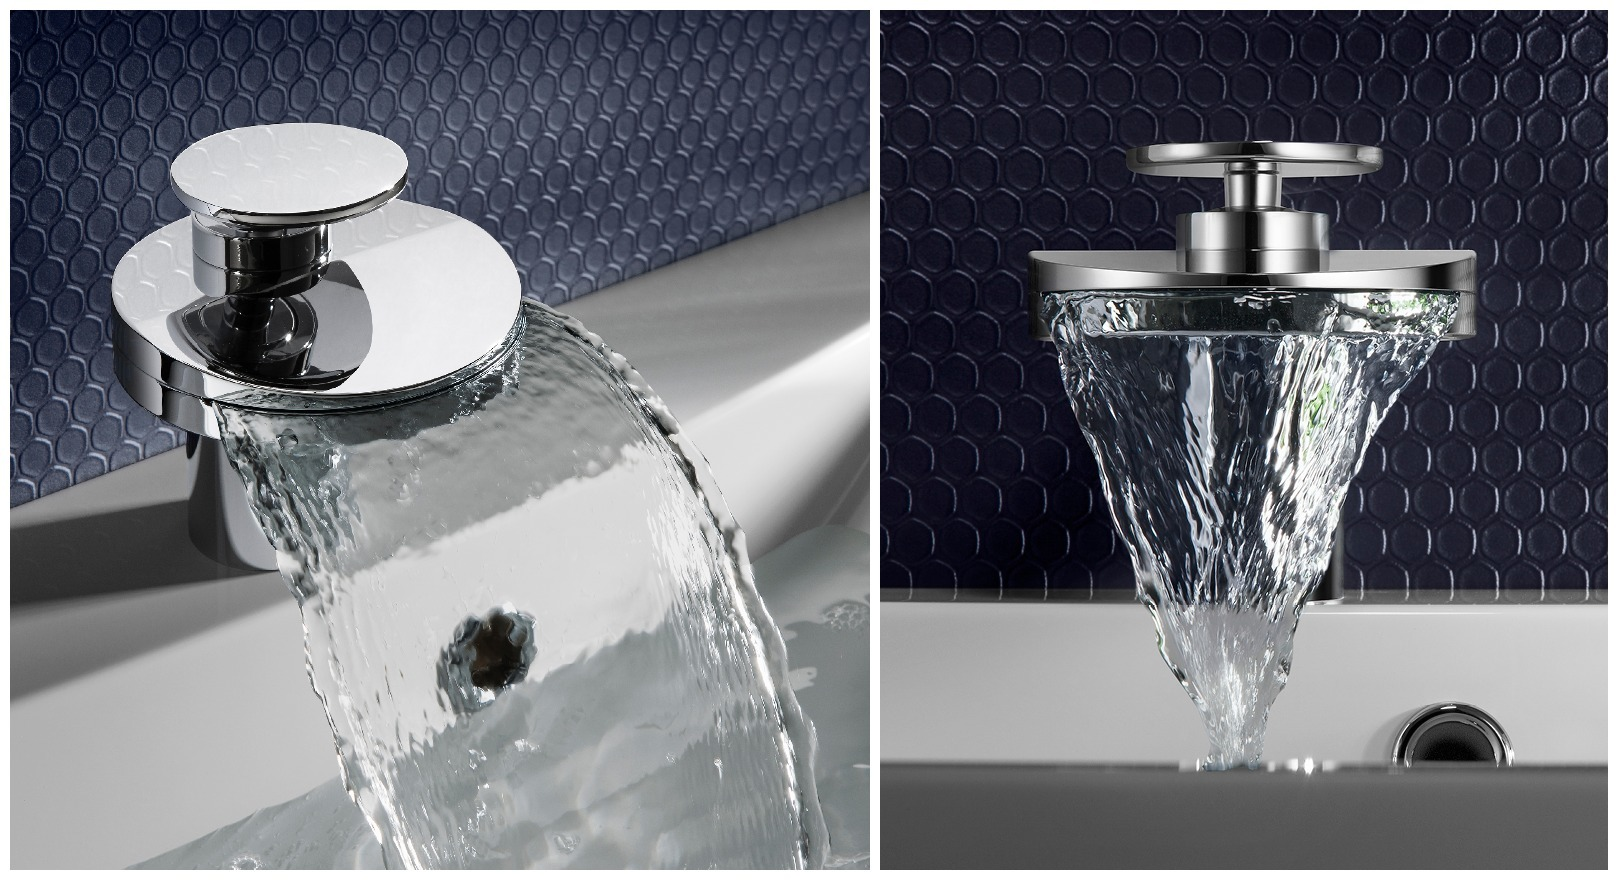 Curved bathroom accessories